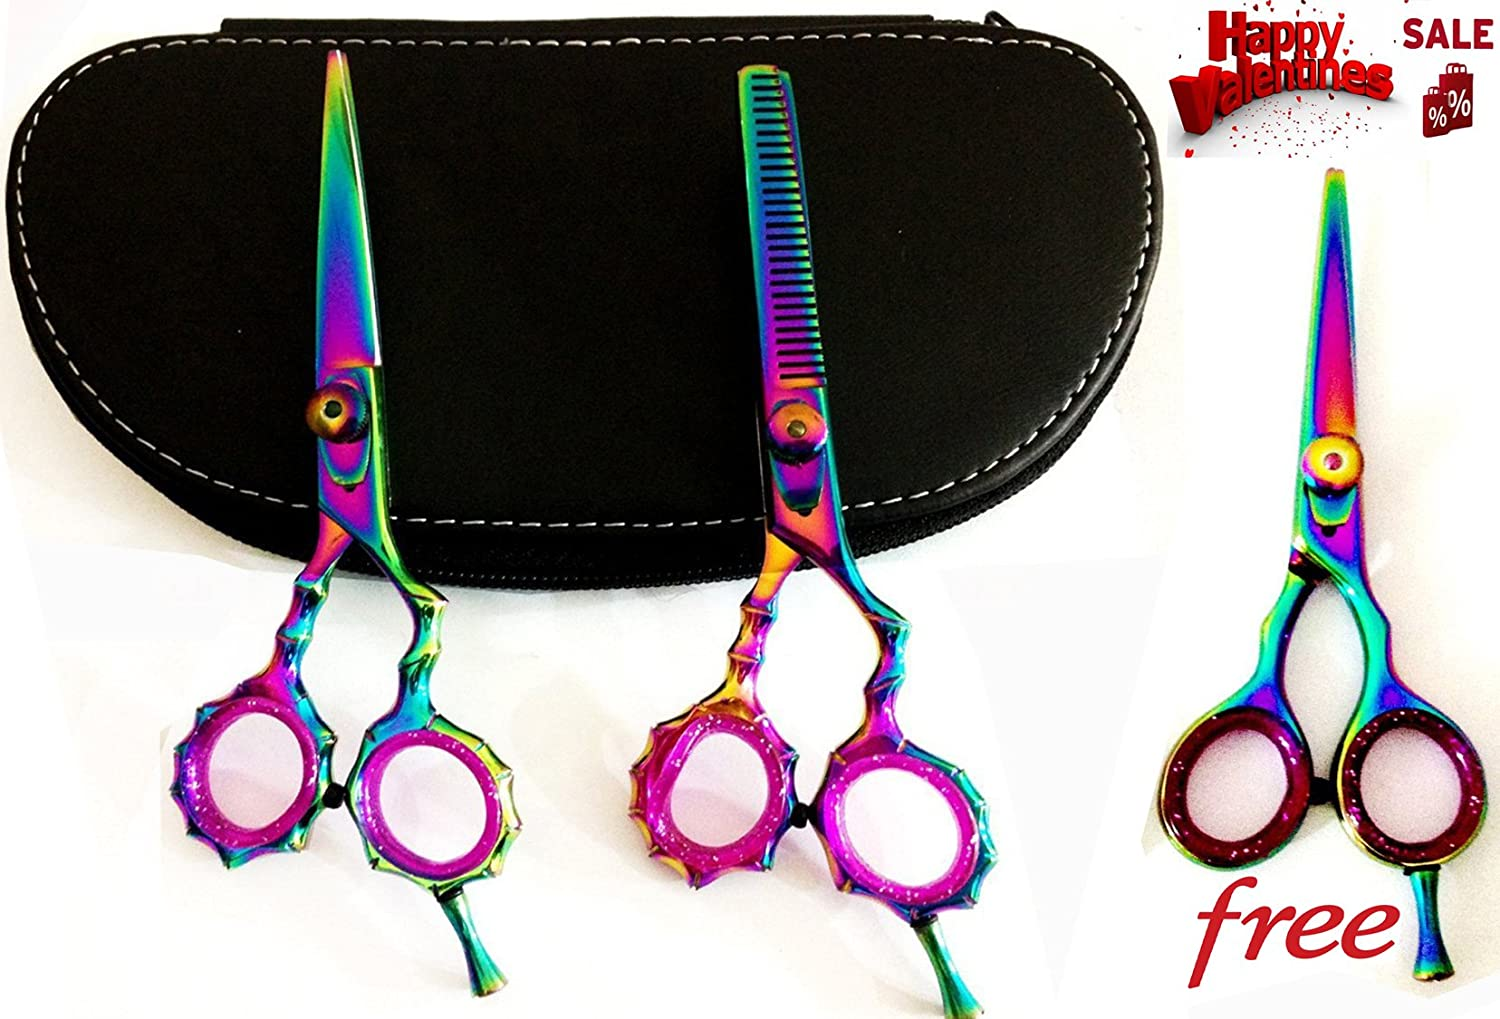 New Multicolor J2 Japanese Steel Professional Razor Edge Titanium Coated Hairdressing Scissors and Hair Thinning Scissors/shear Set 5.5 Inch (14cm)+ Free Mutlicolor Barber Shear